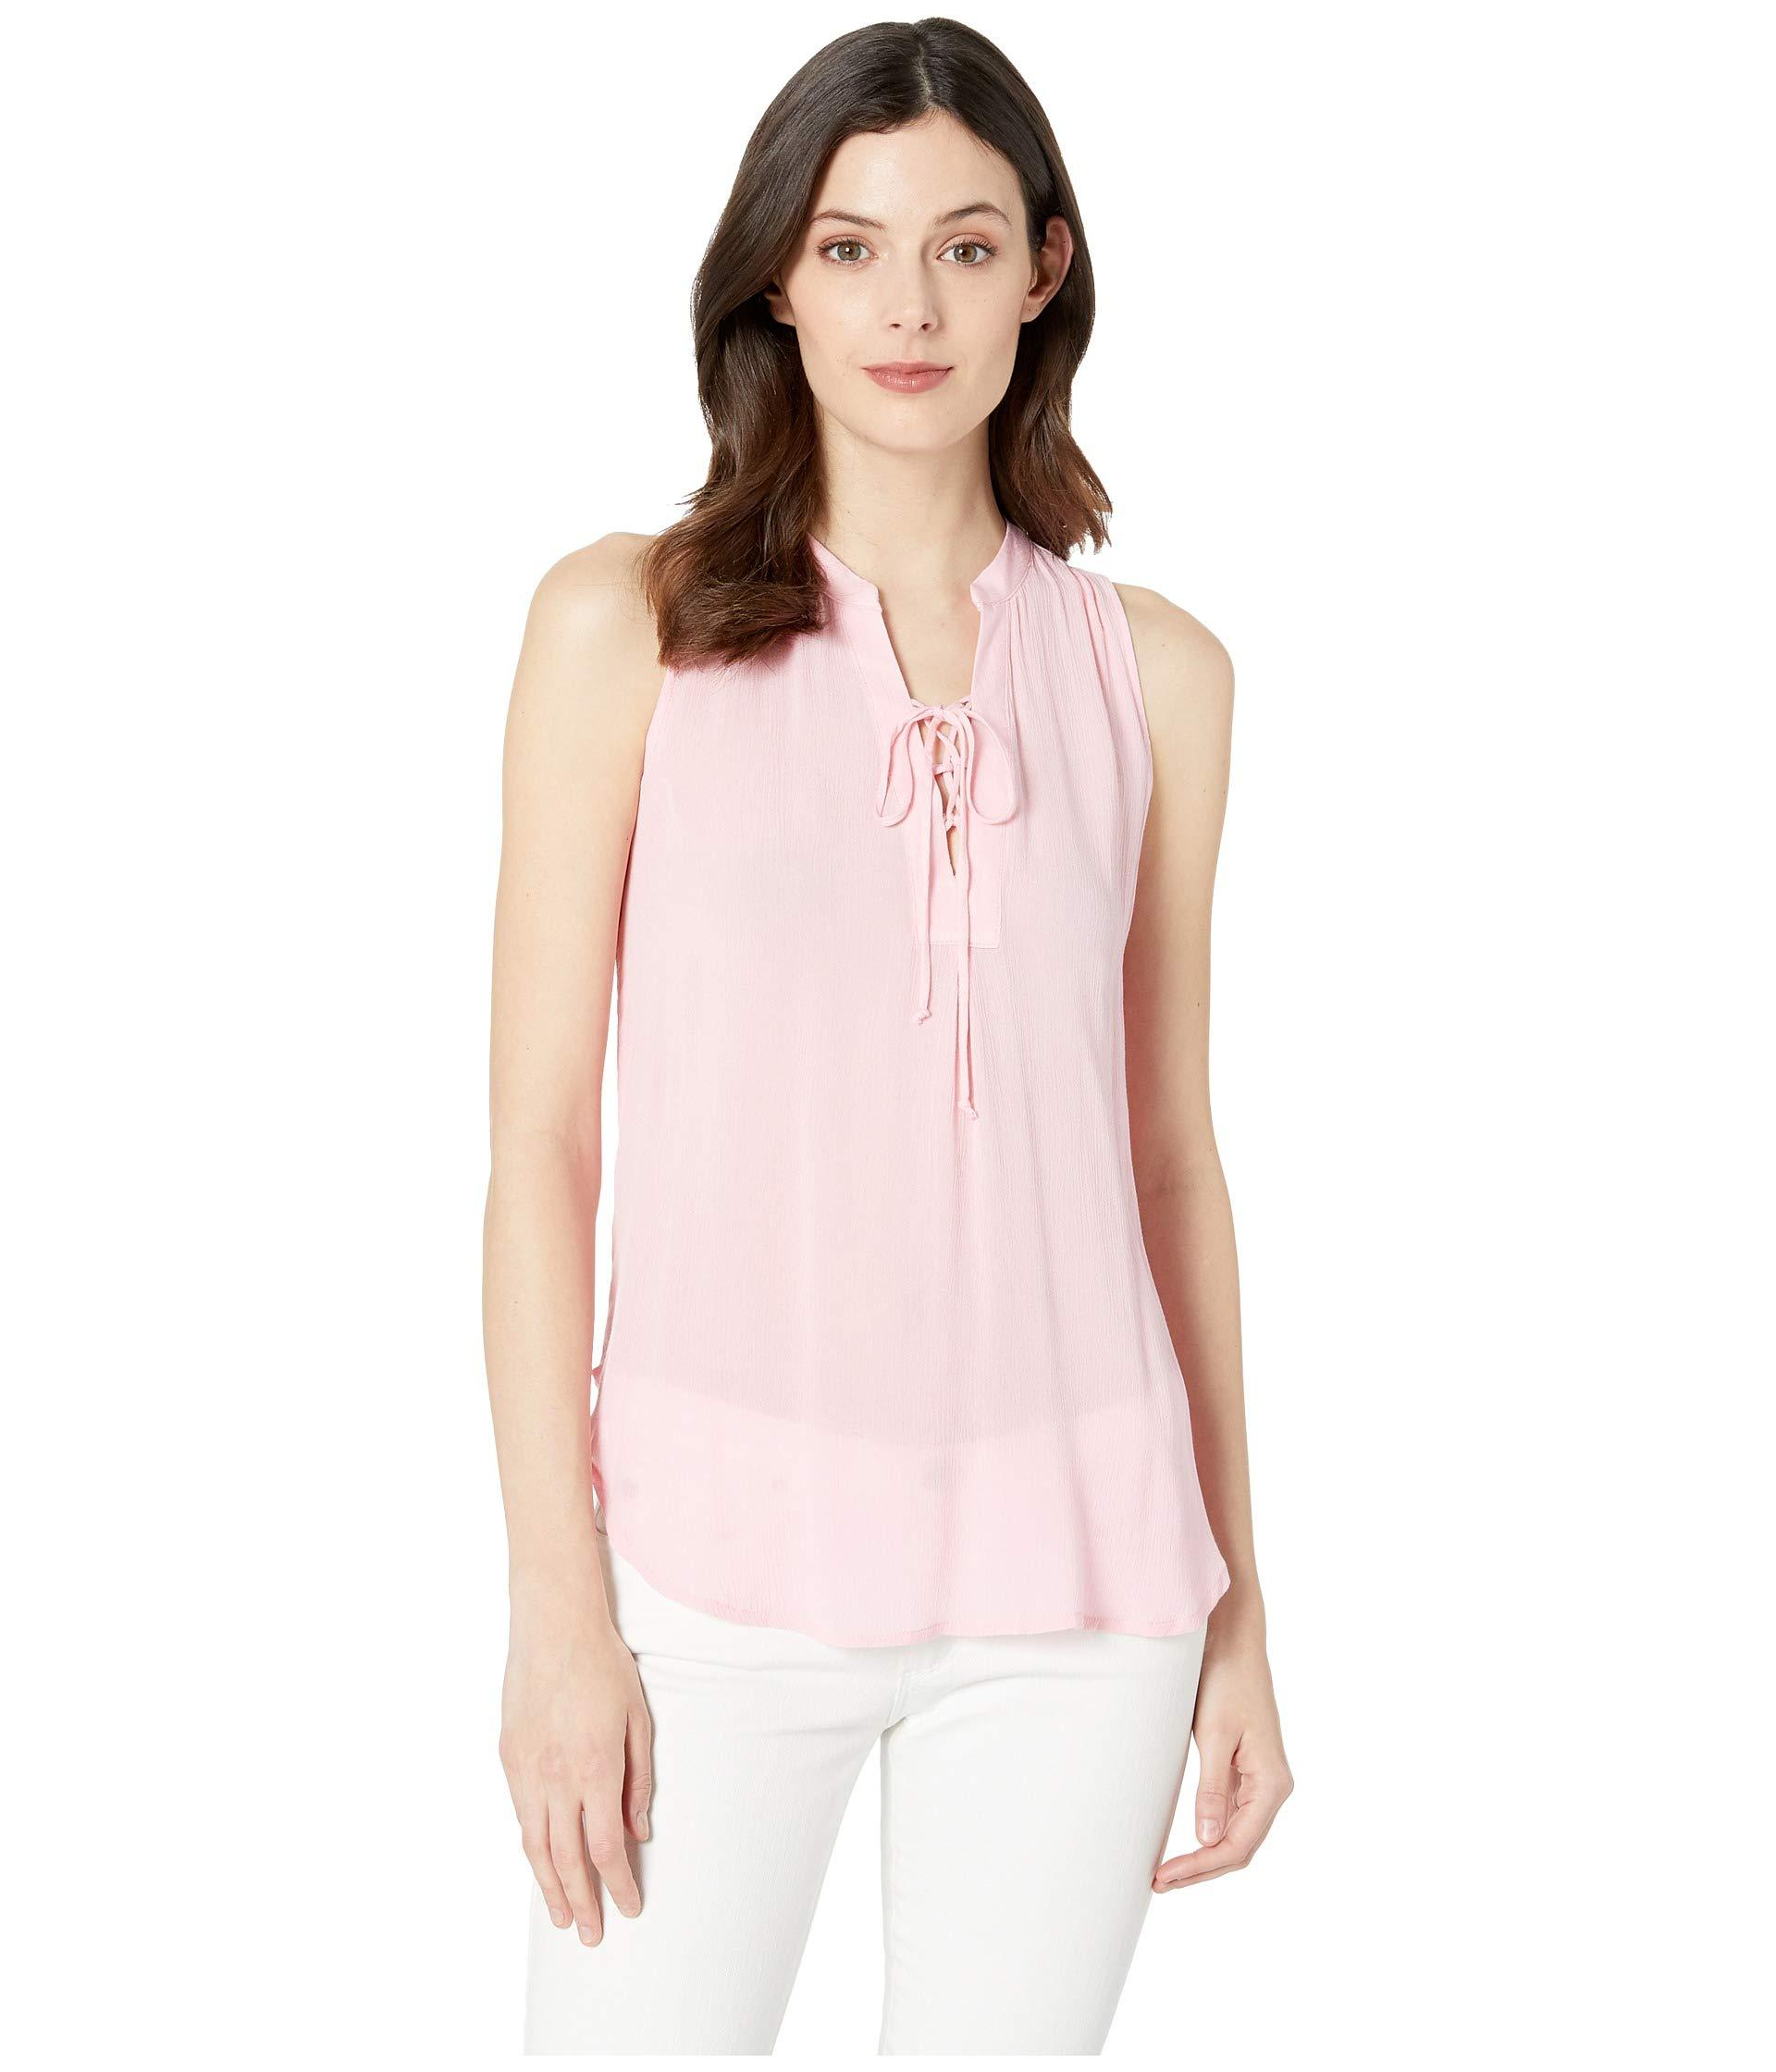 a77097778b6d2 Lyst - Stetson 2912 Textured Rayon Crepe Tank Top (pink) Women s ...